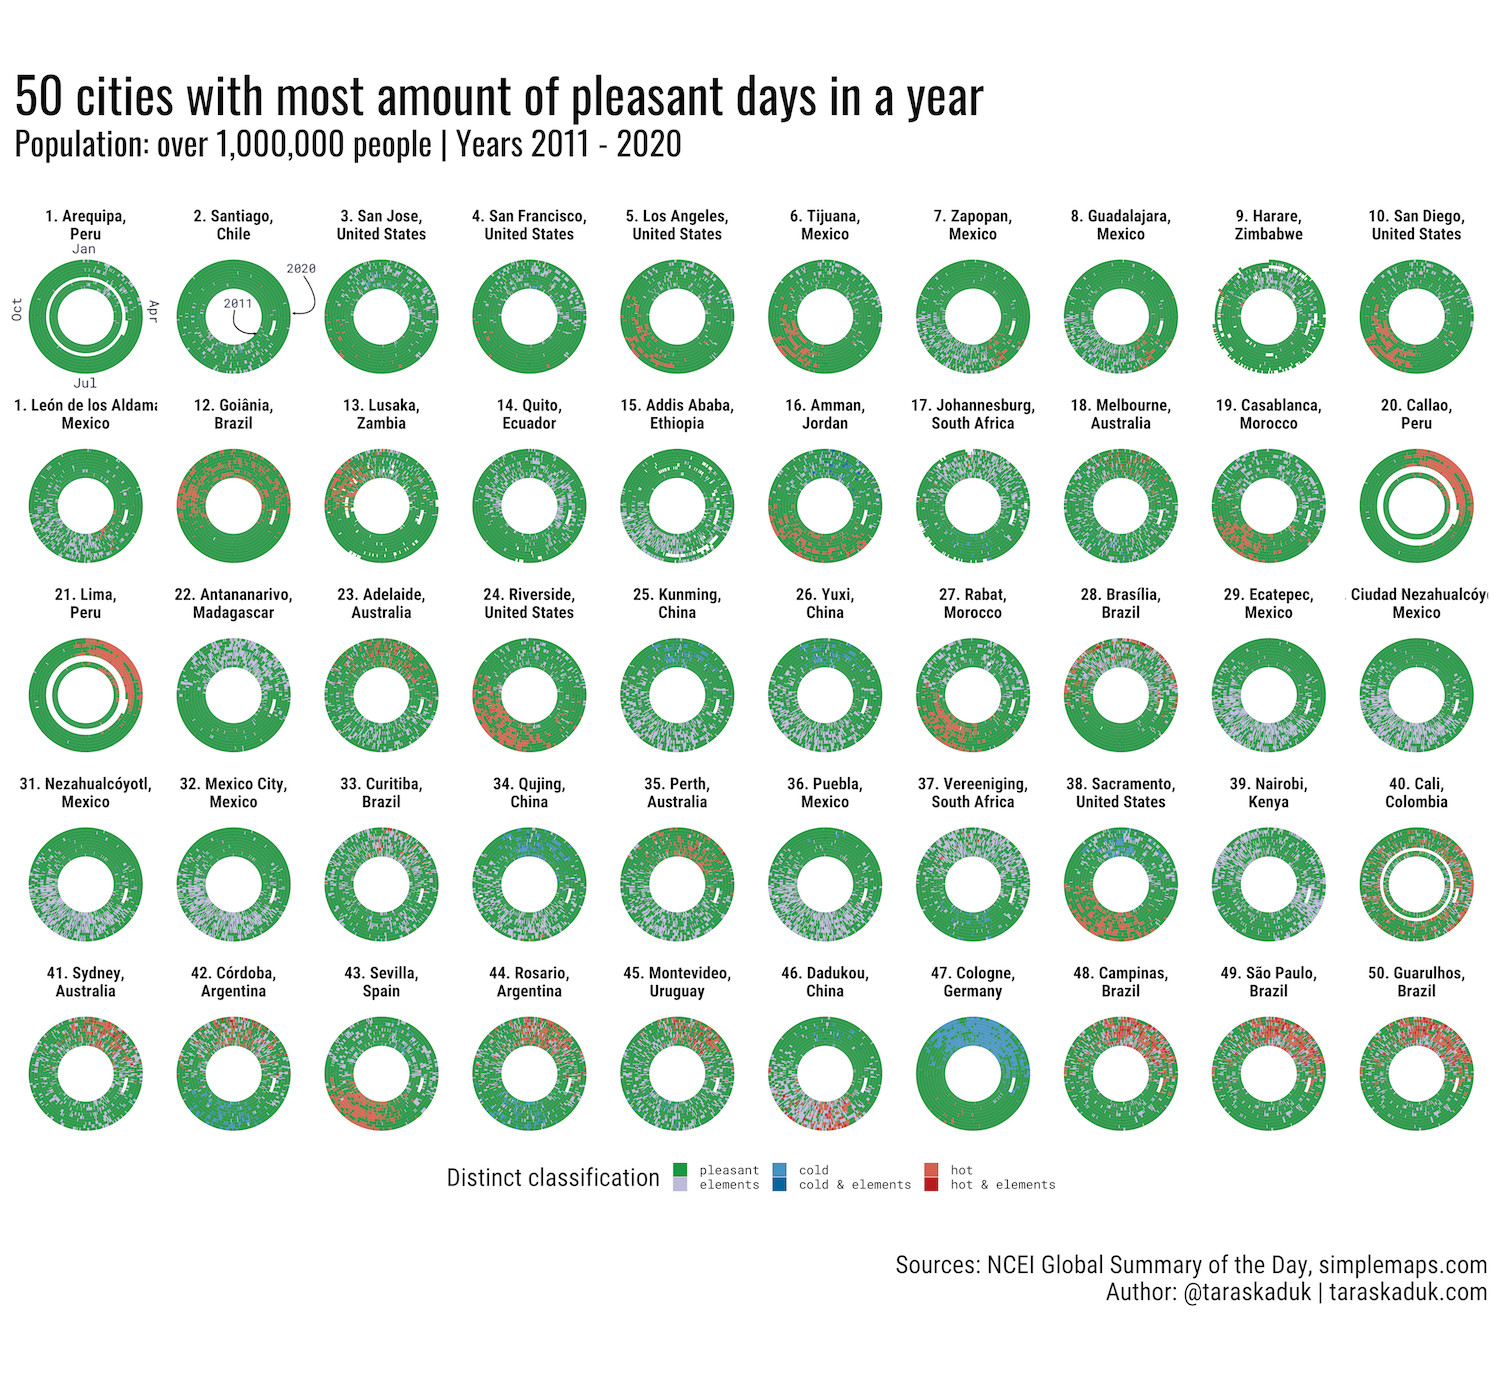 50 Cities with most amount of pleasant days in a year